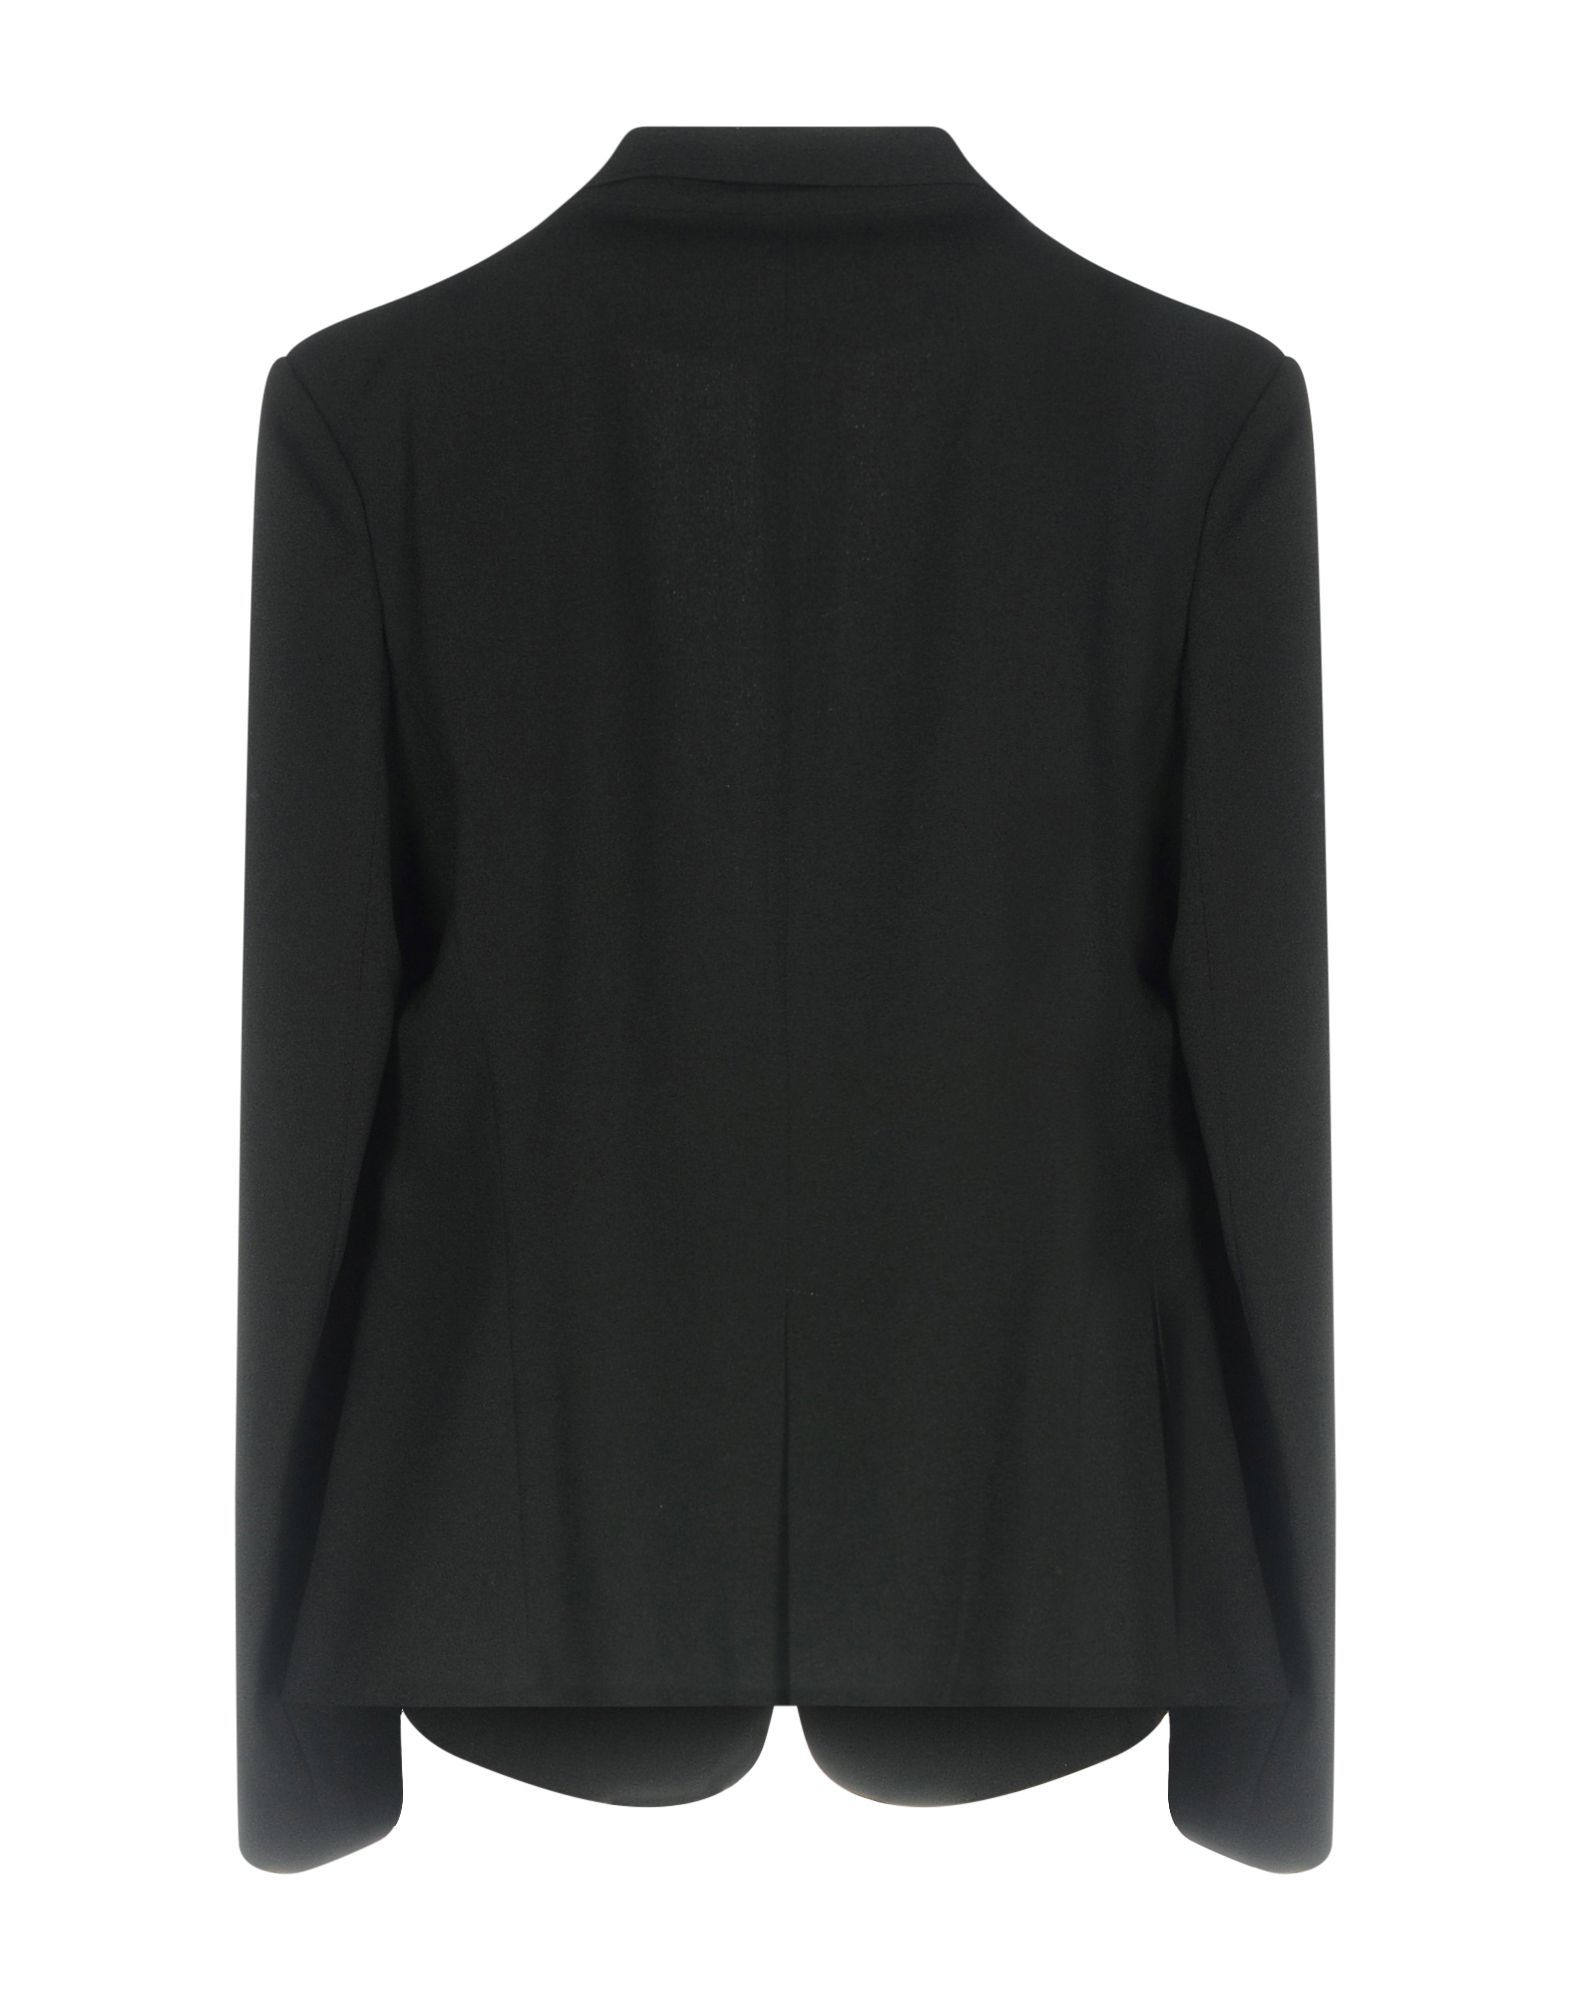 SUITS AND JACKETS Shirtaporter Black Woman Polyester